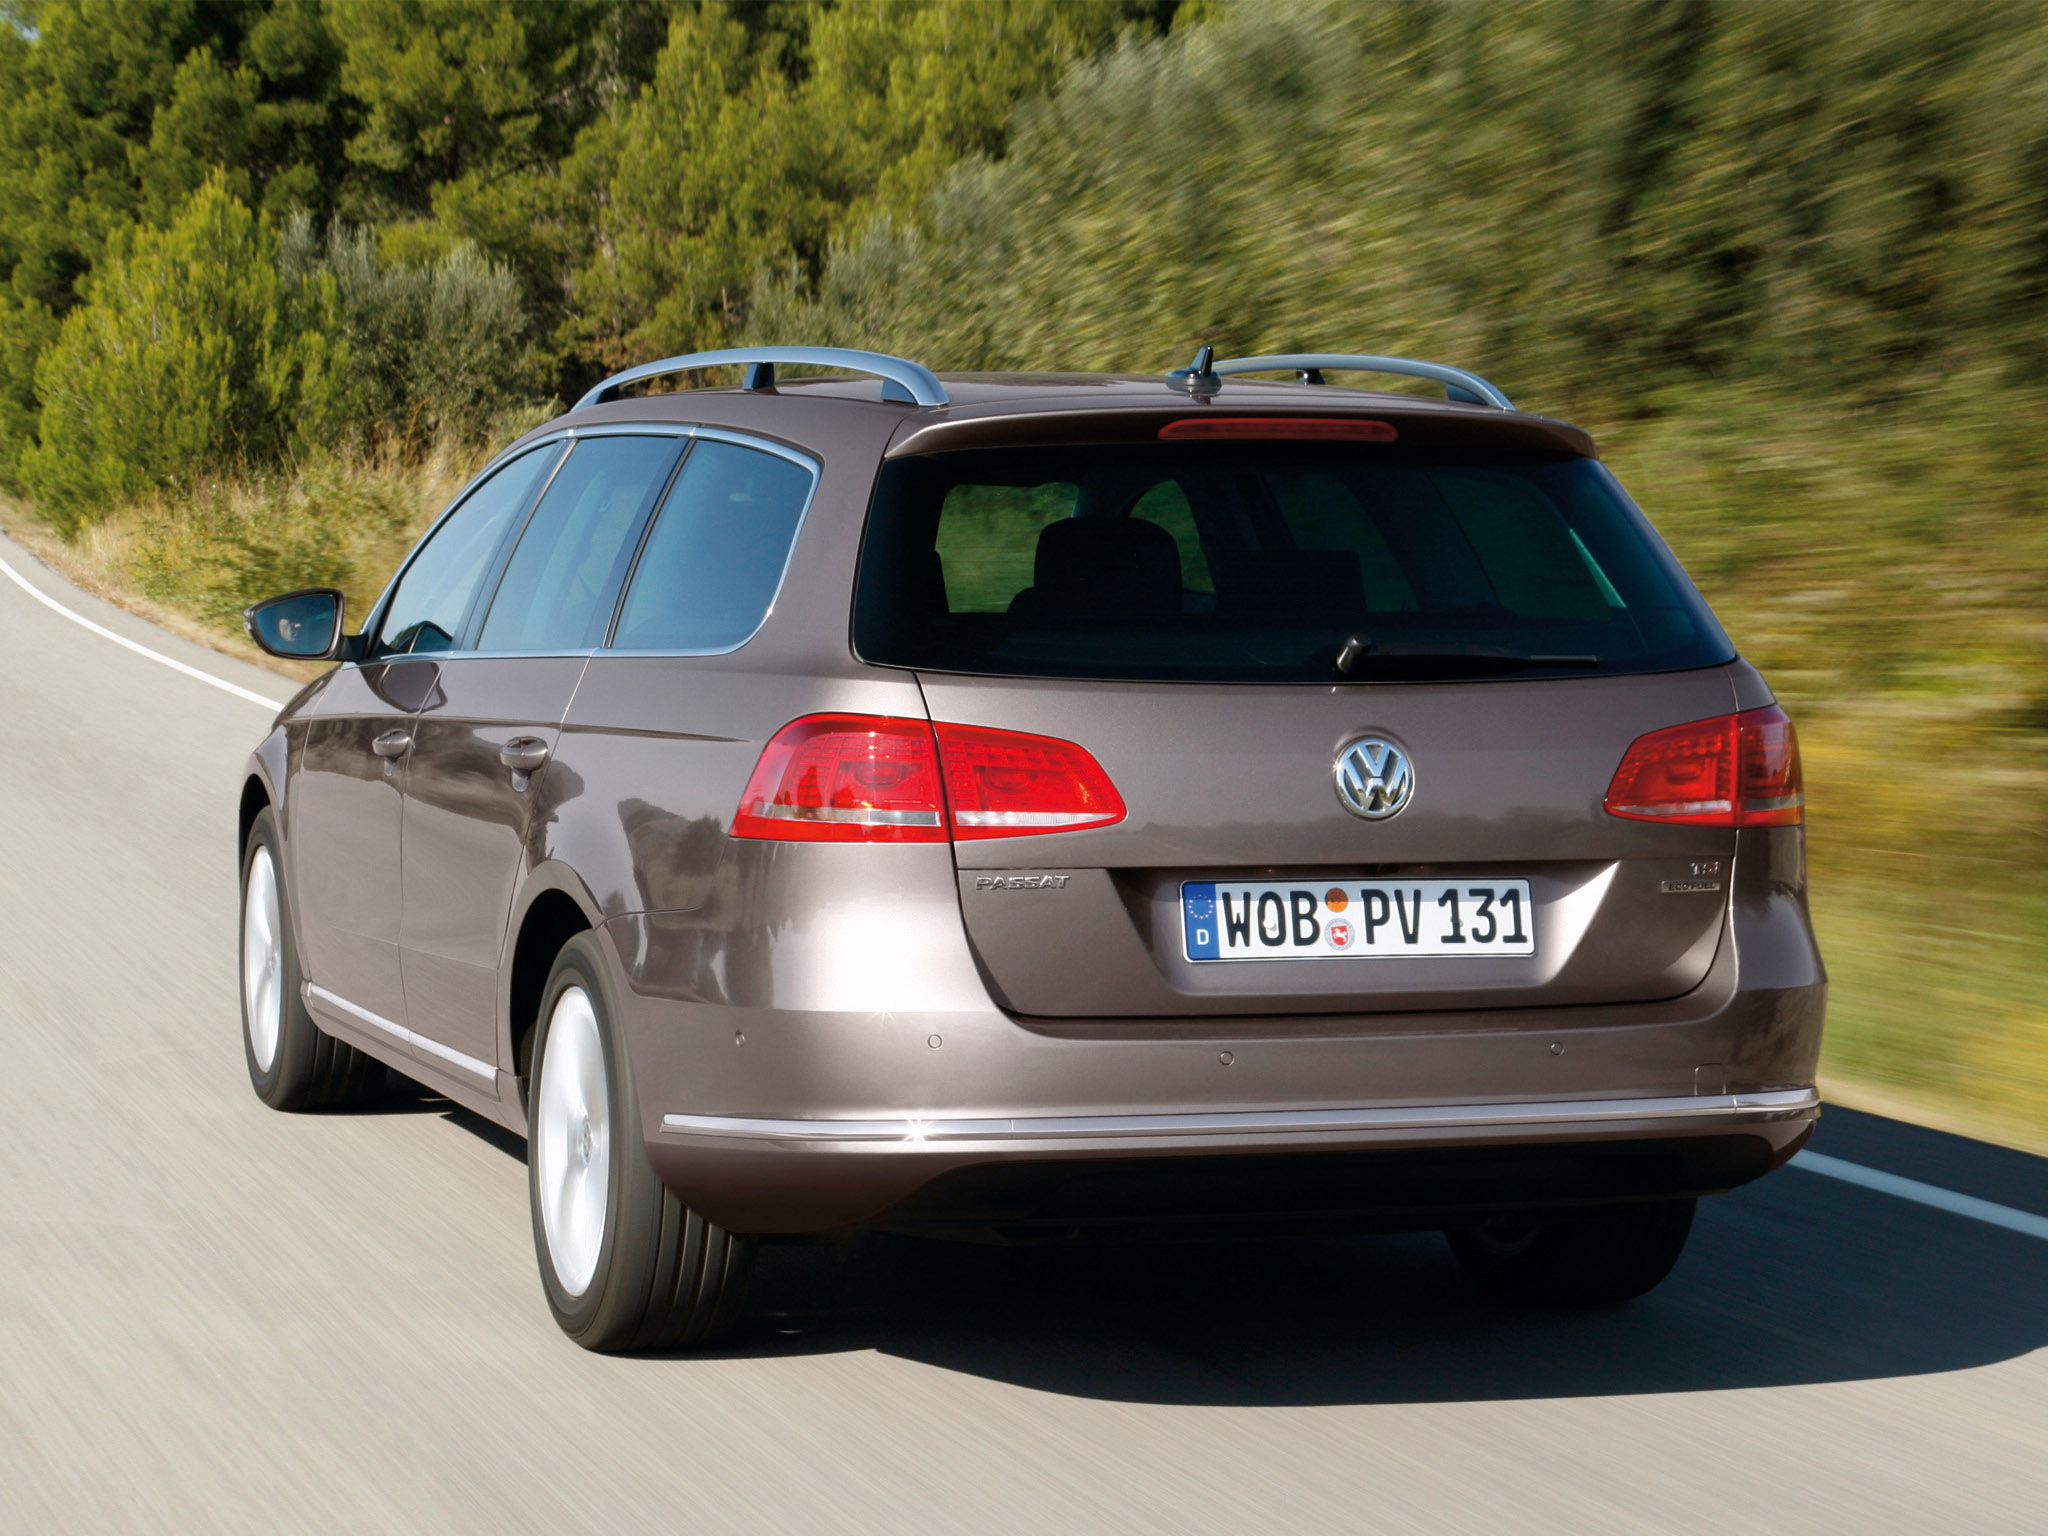 2010 volkswagen passat variant b7 pictures. Black Bedroom Furniture Sets. Home Design Ideas